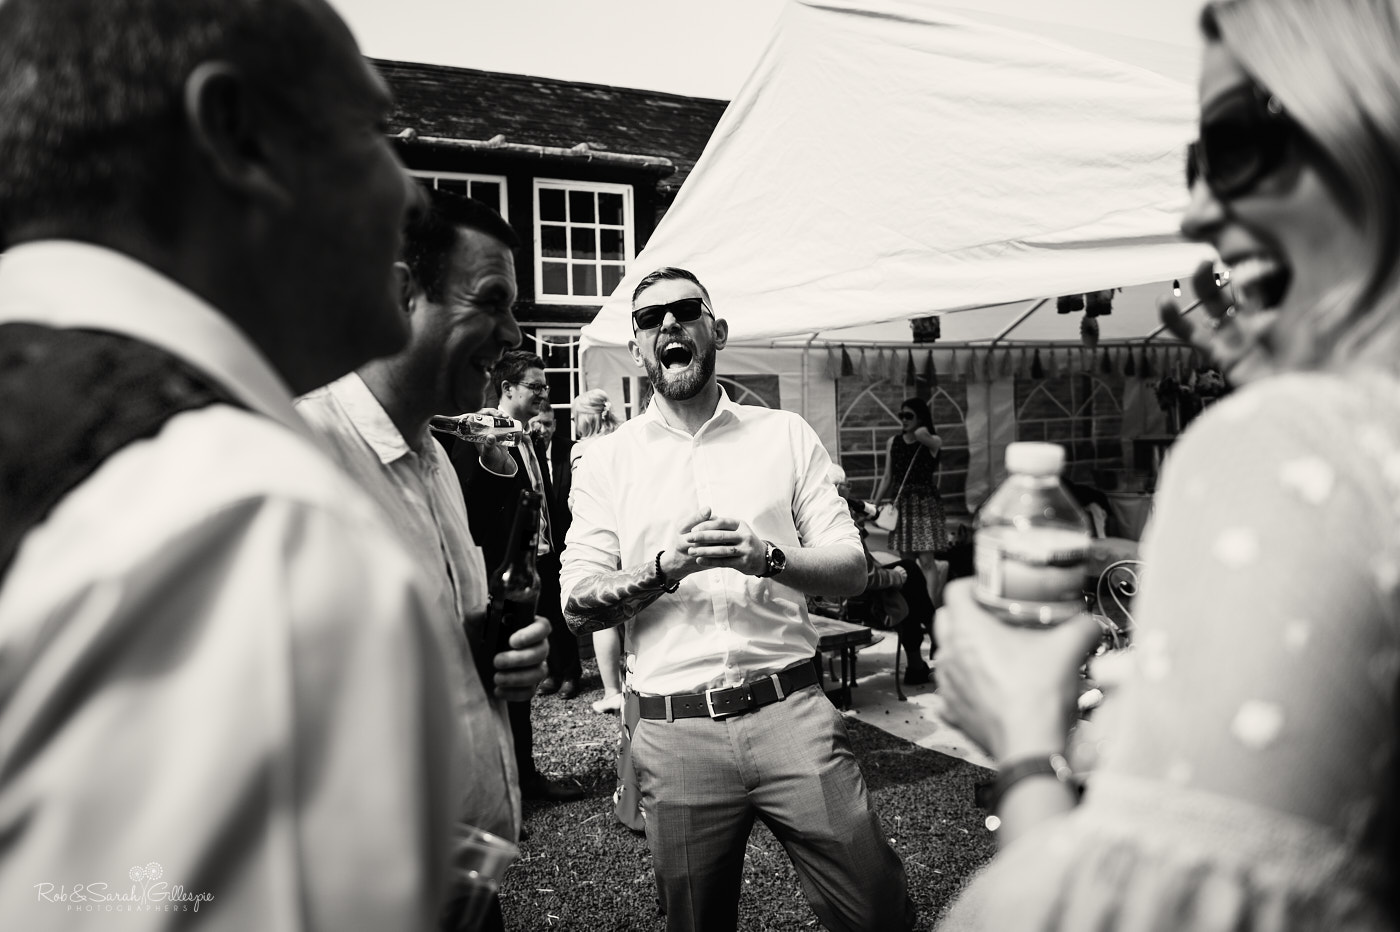 Guests relaxing at Belbroughton village hall wedding reception